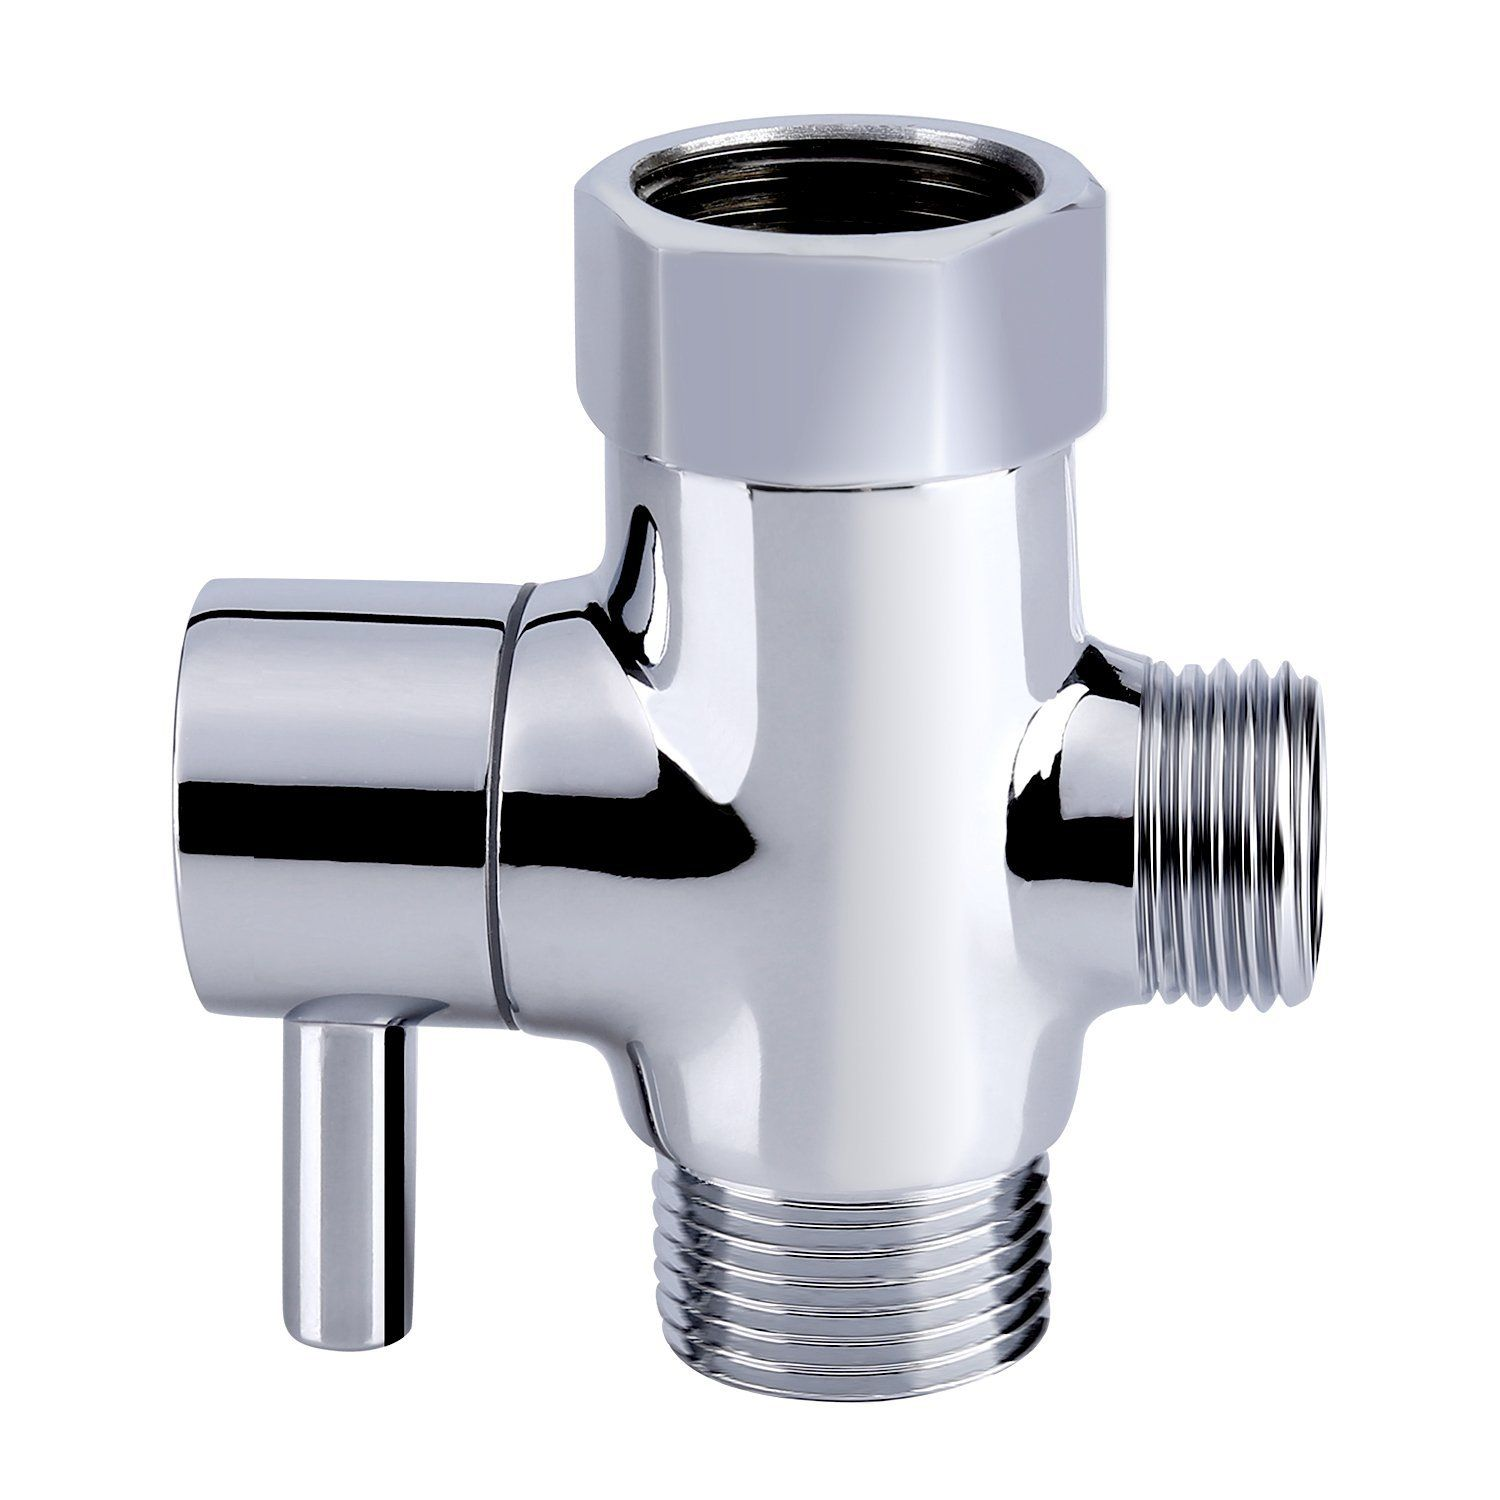 Our tvalve is made of top premium brass core constructed